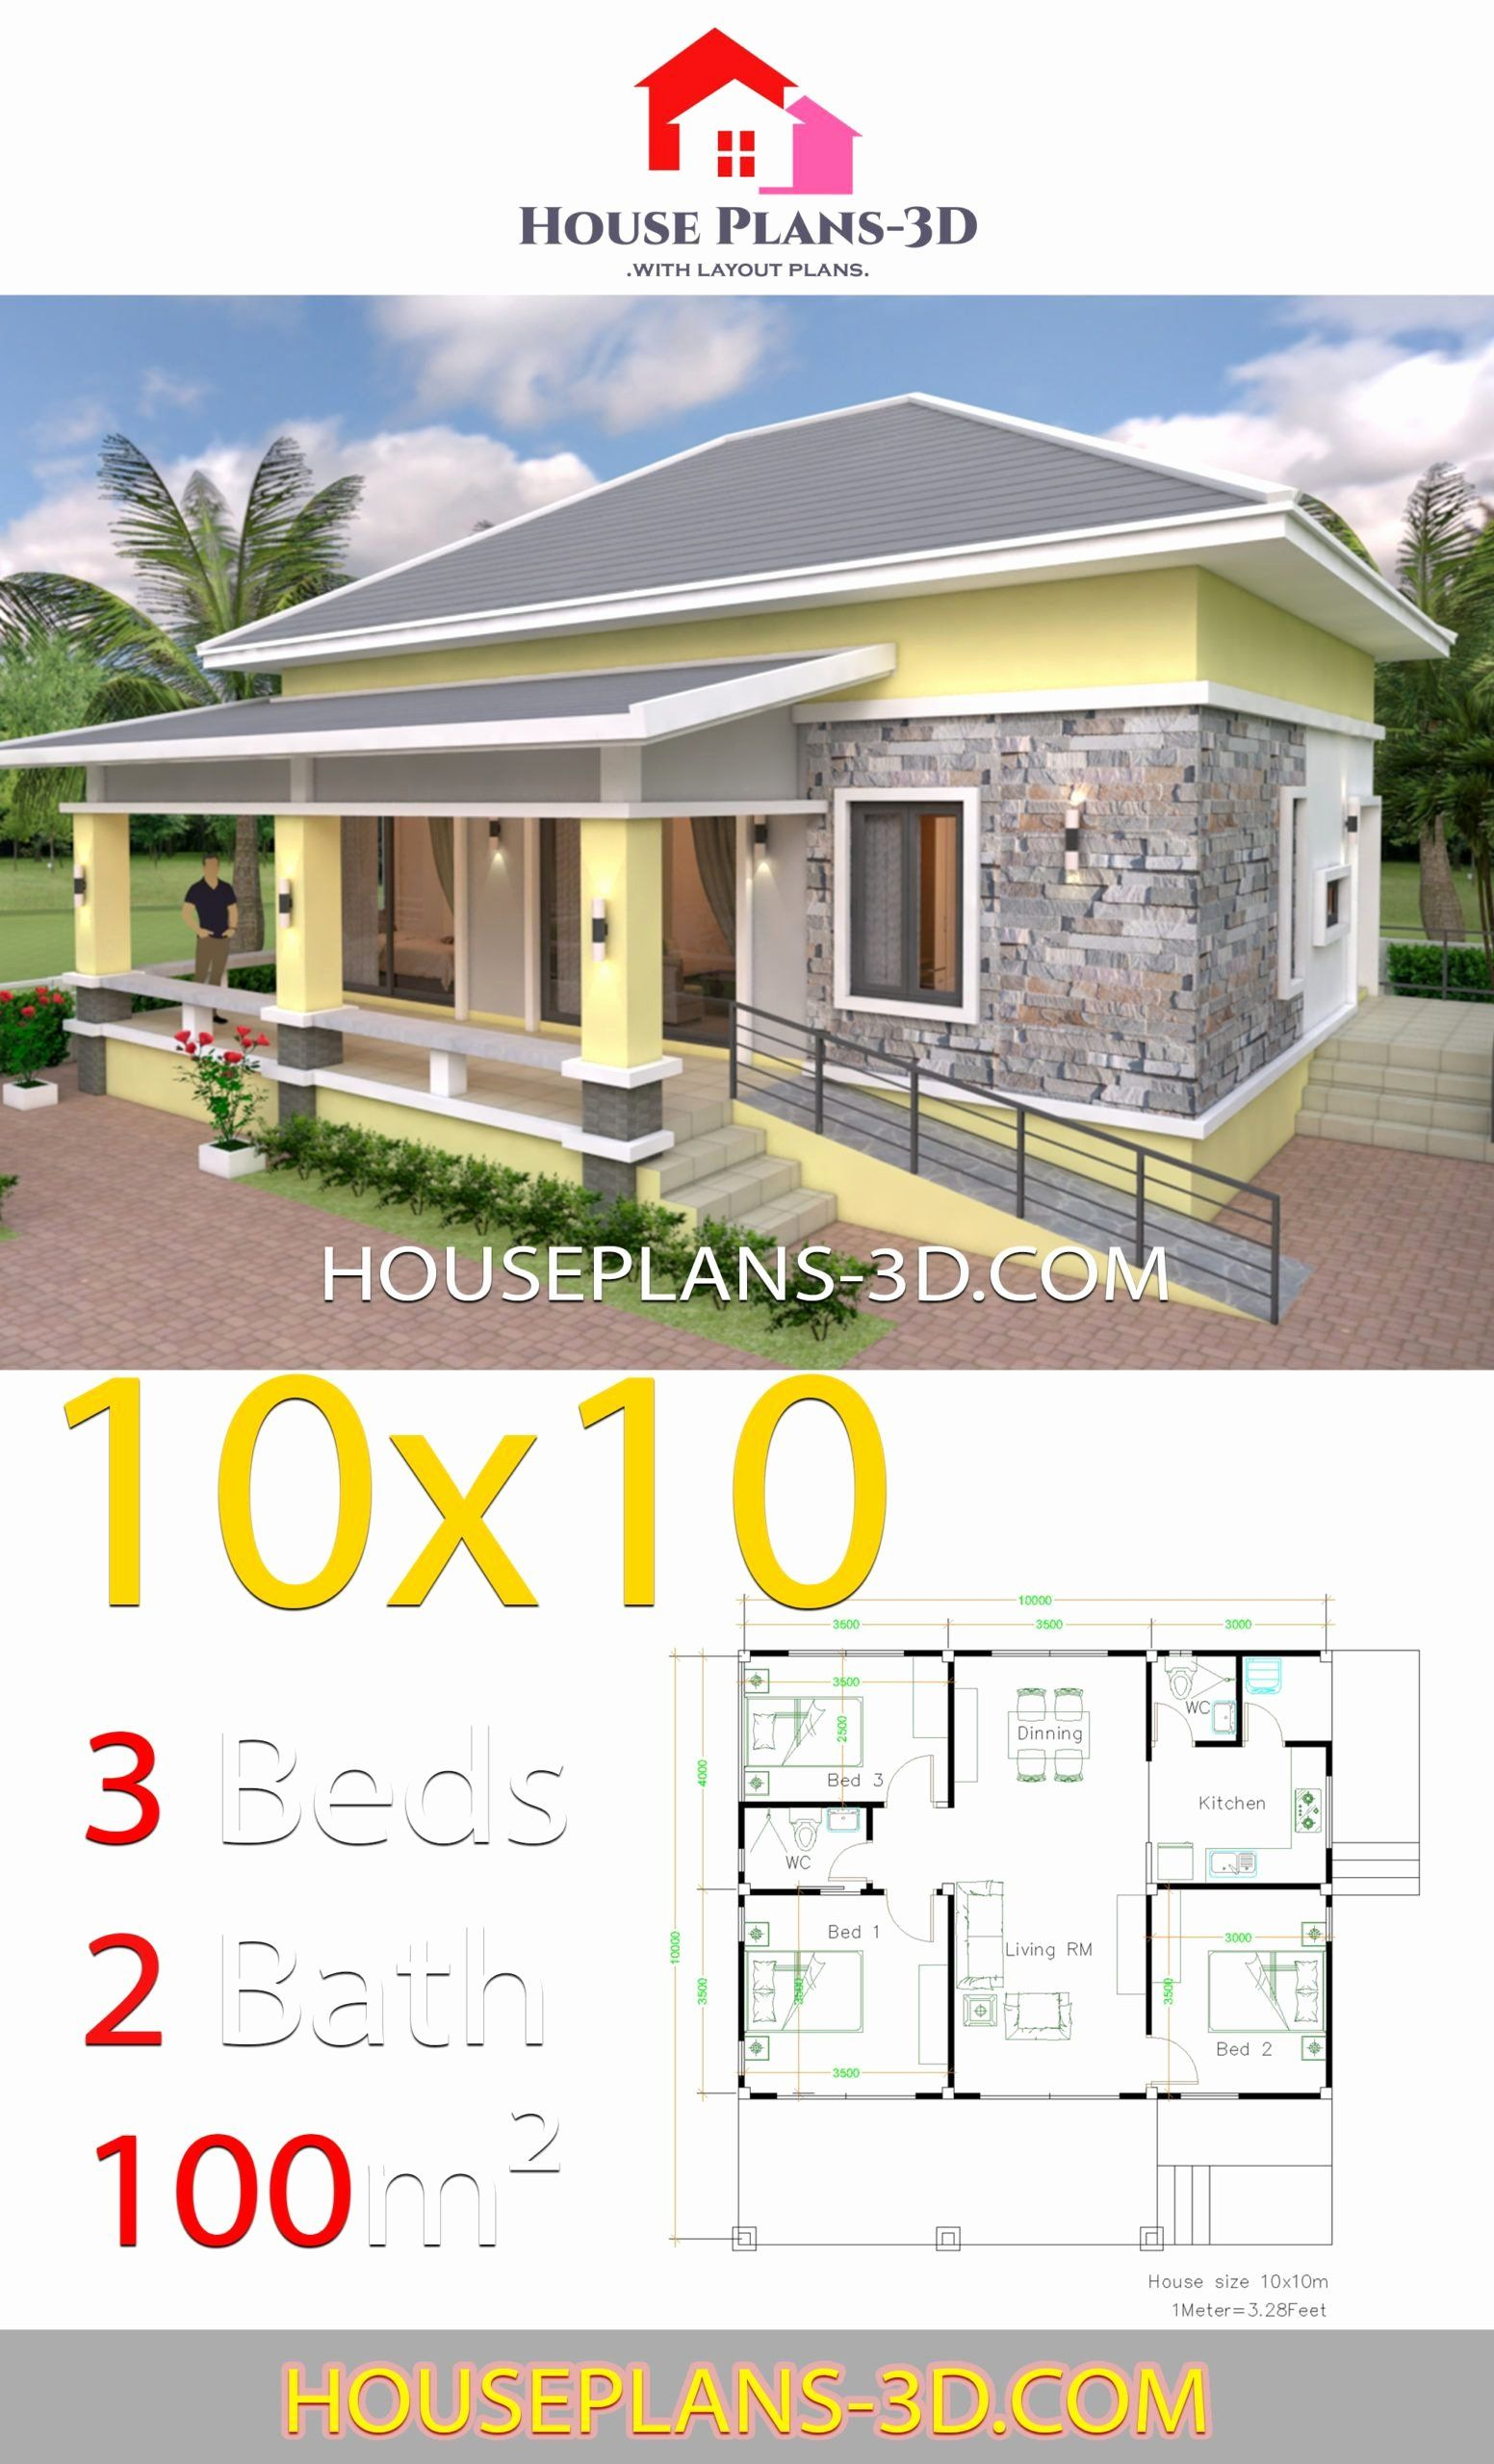 Hip Roof House Plans Contemporary Unique House Design 10x10 With 3 Bedrooms Hip Roof In 2020 In 2020 House Plans Bungalow House Plans House Roof